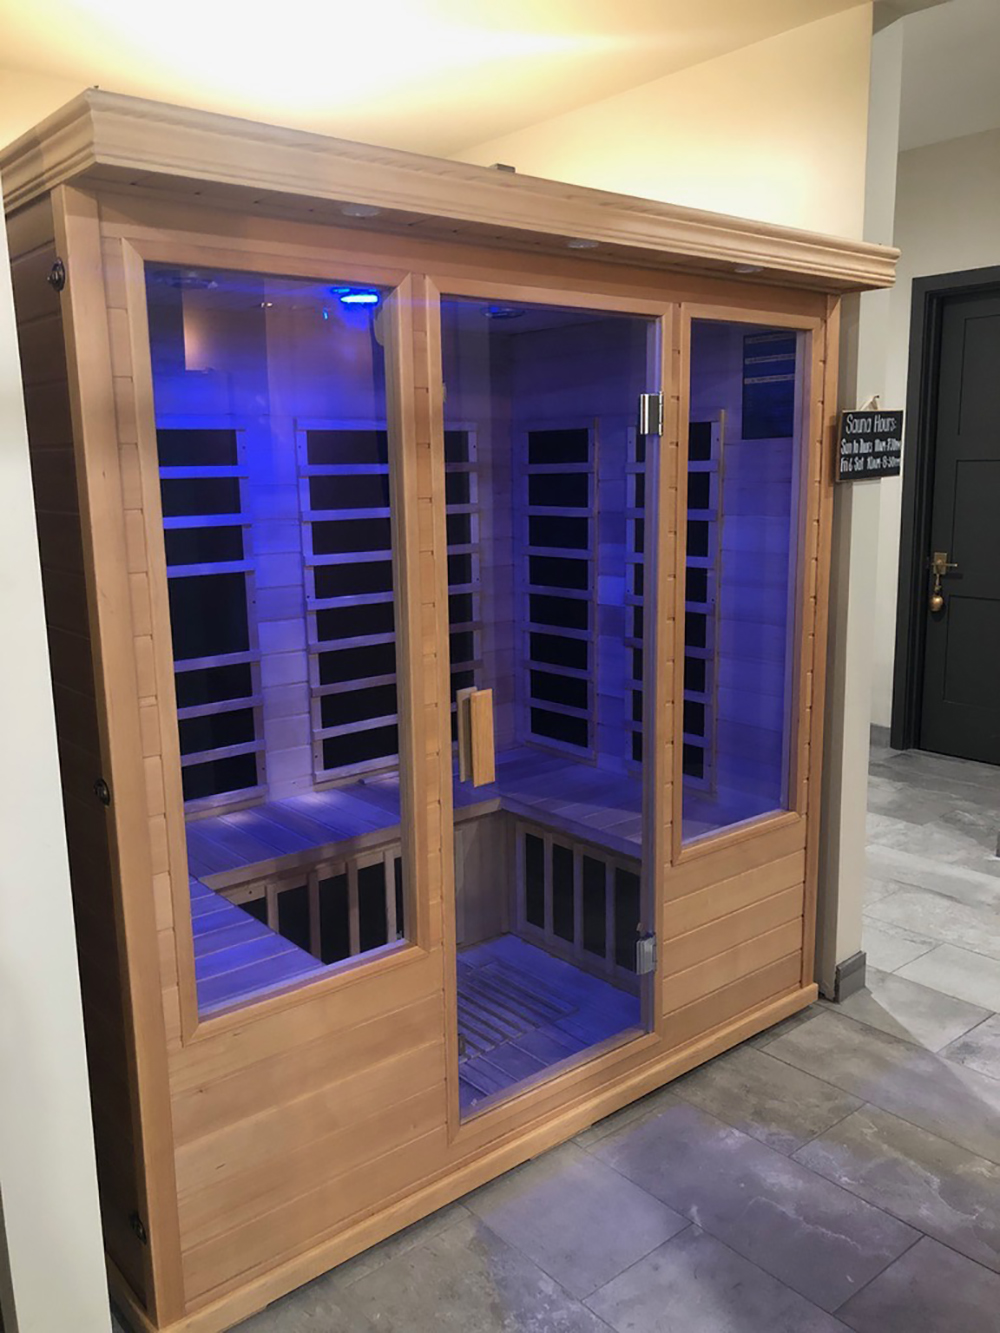 Guests can relax in the sauna before or after treatments.